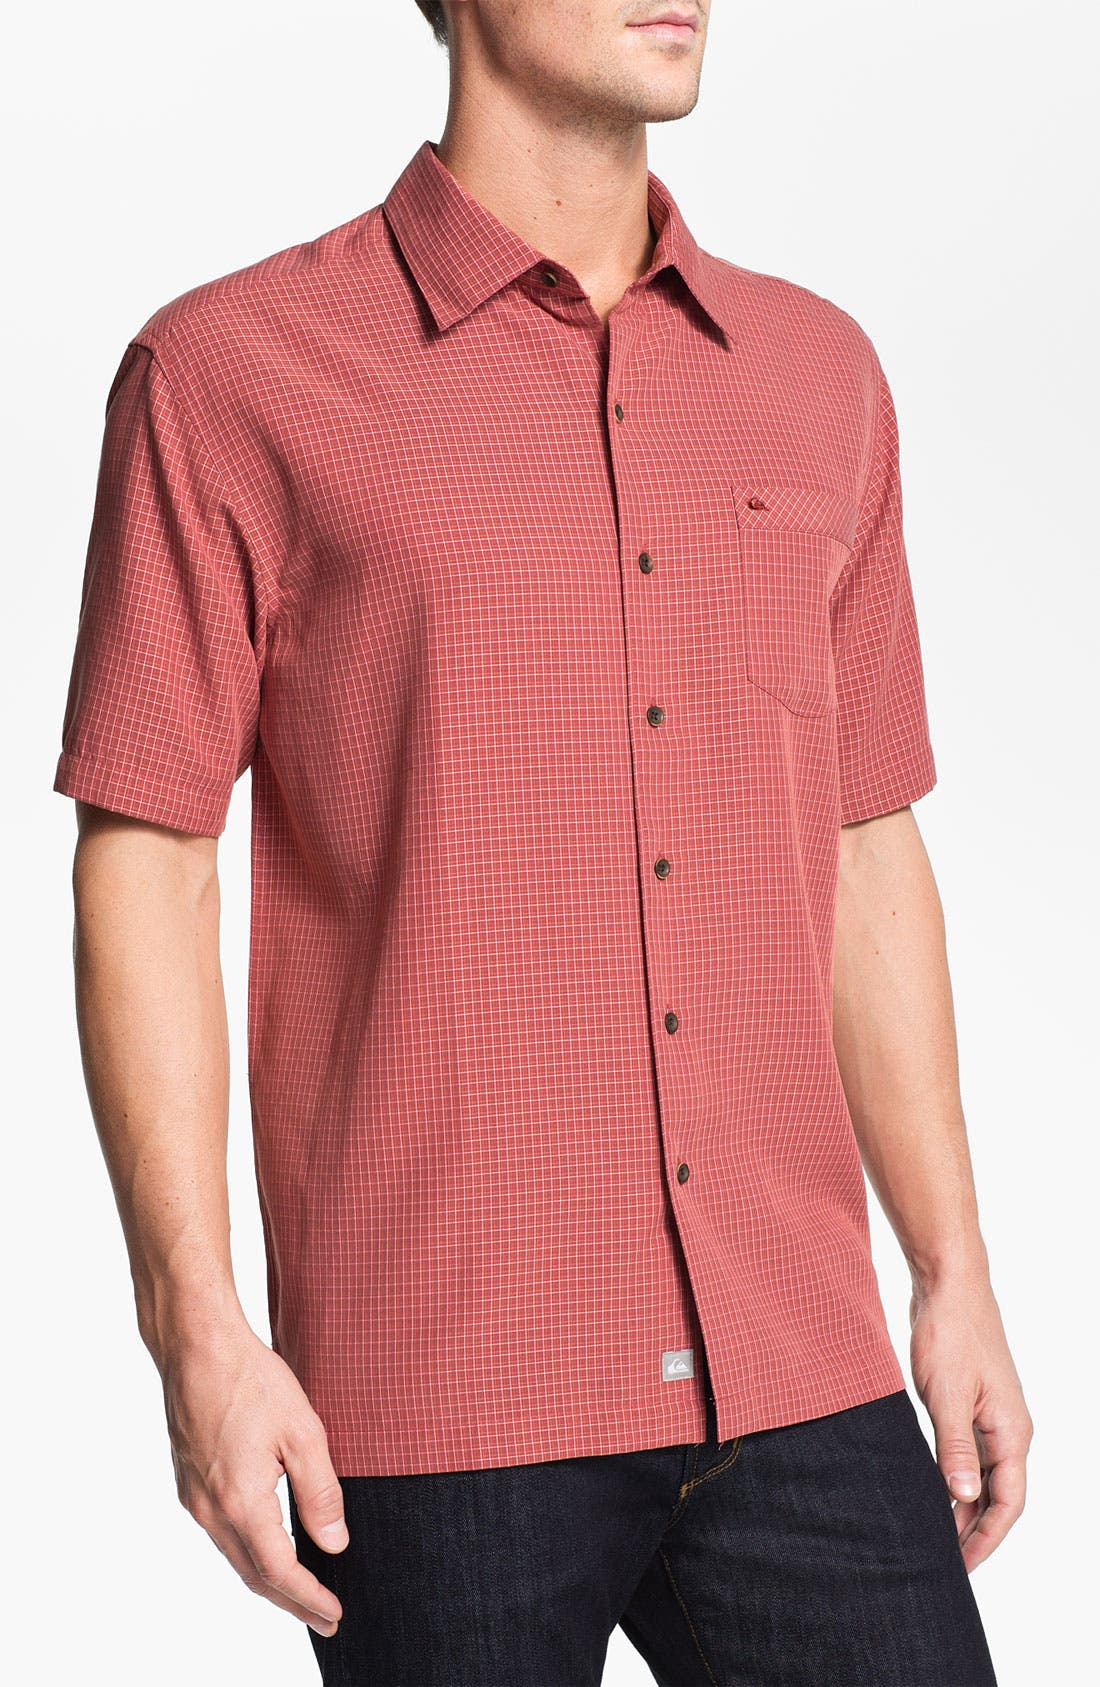 Main Image - Quiksilver 'Clearview Cove' Woven Shirt